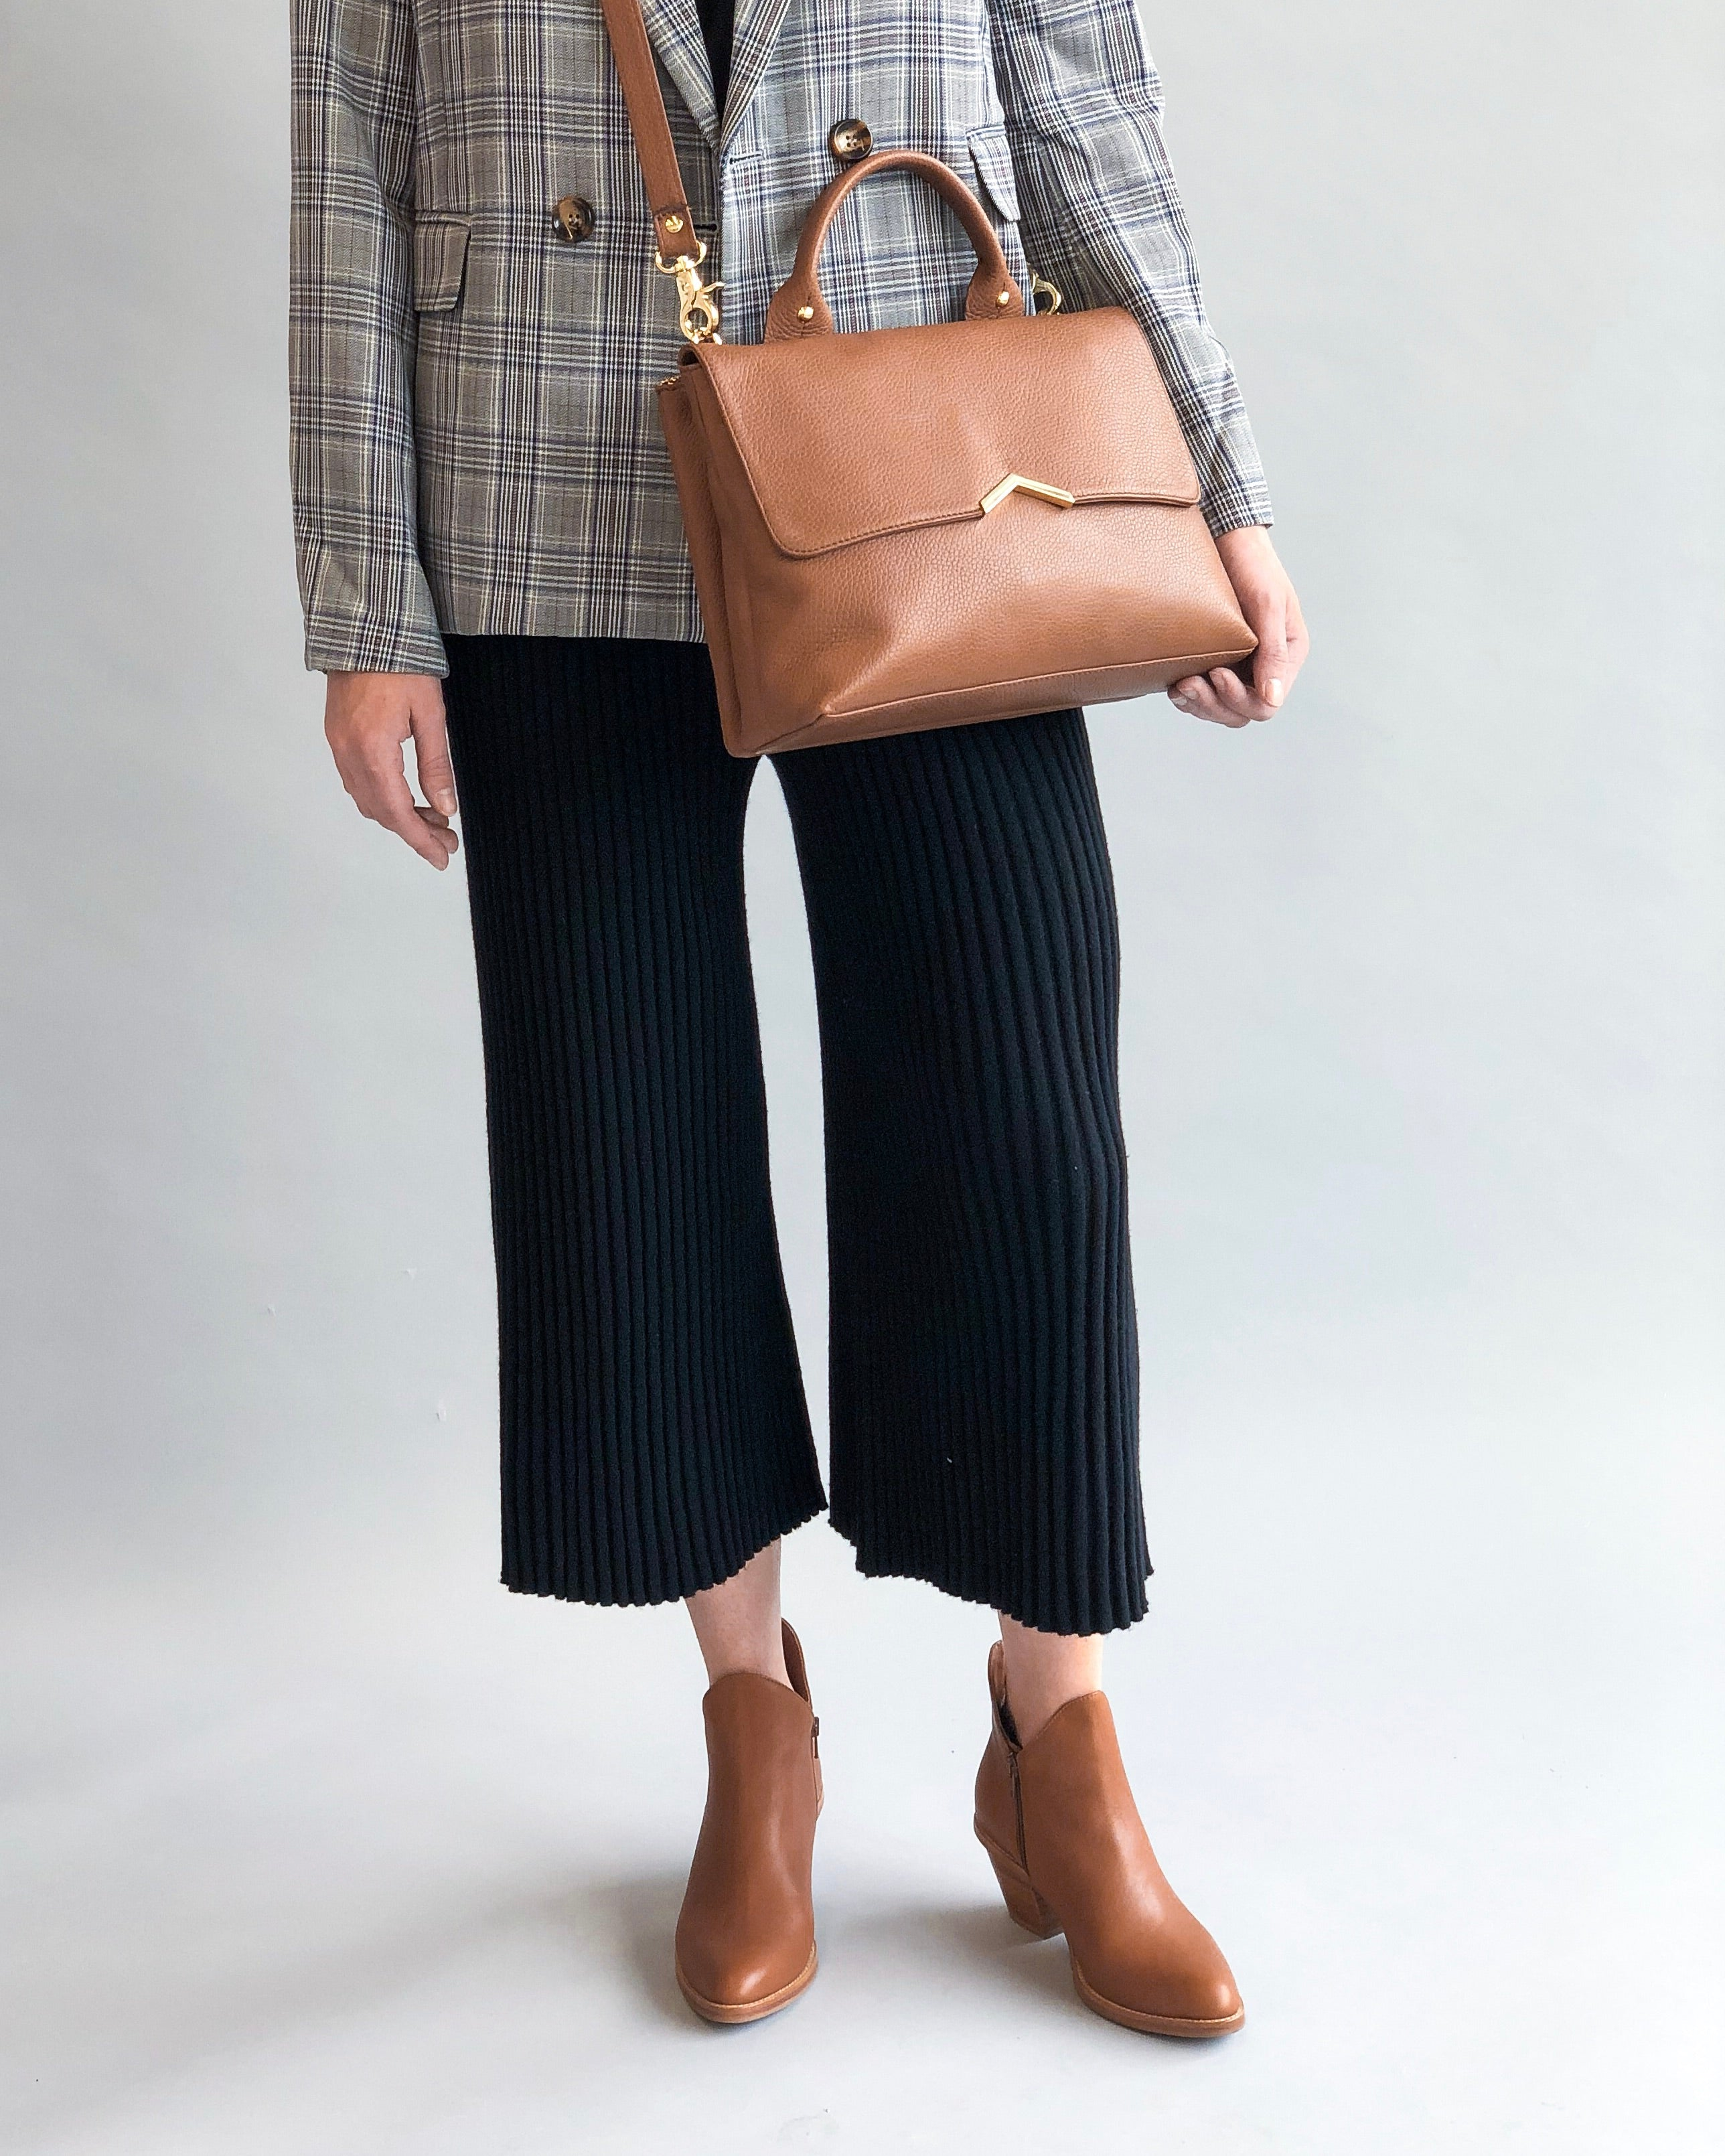 Ankle boots with cropped trousers